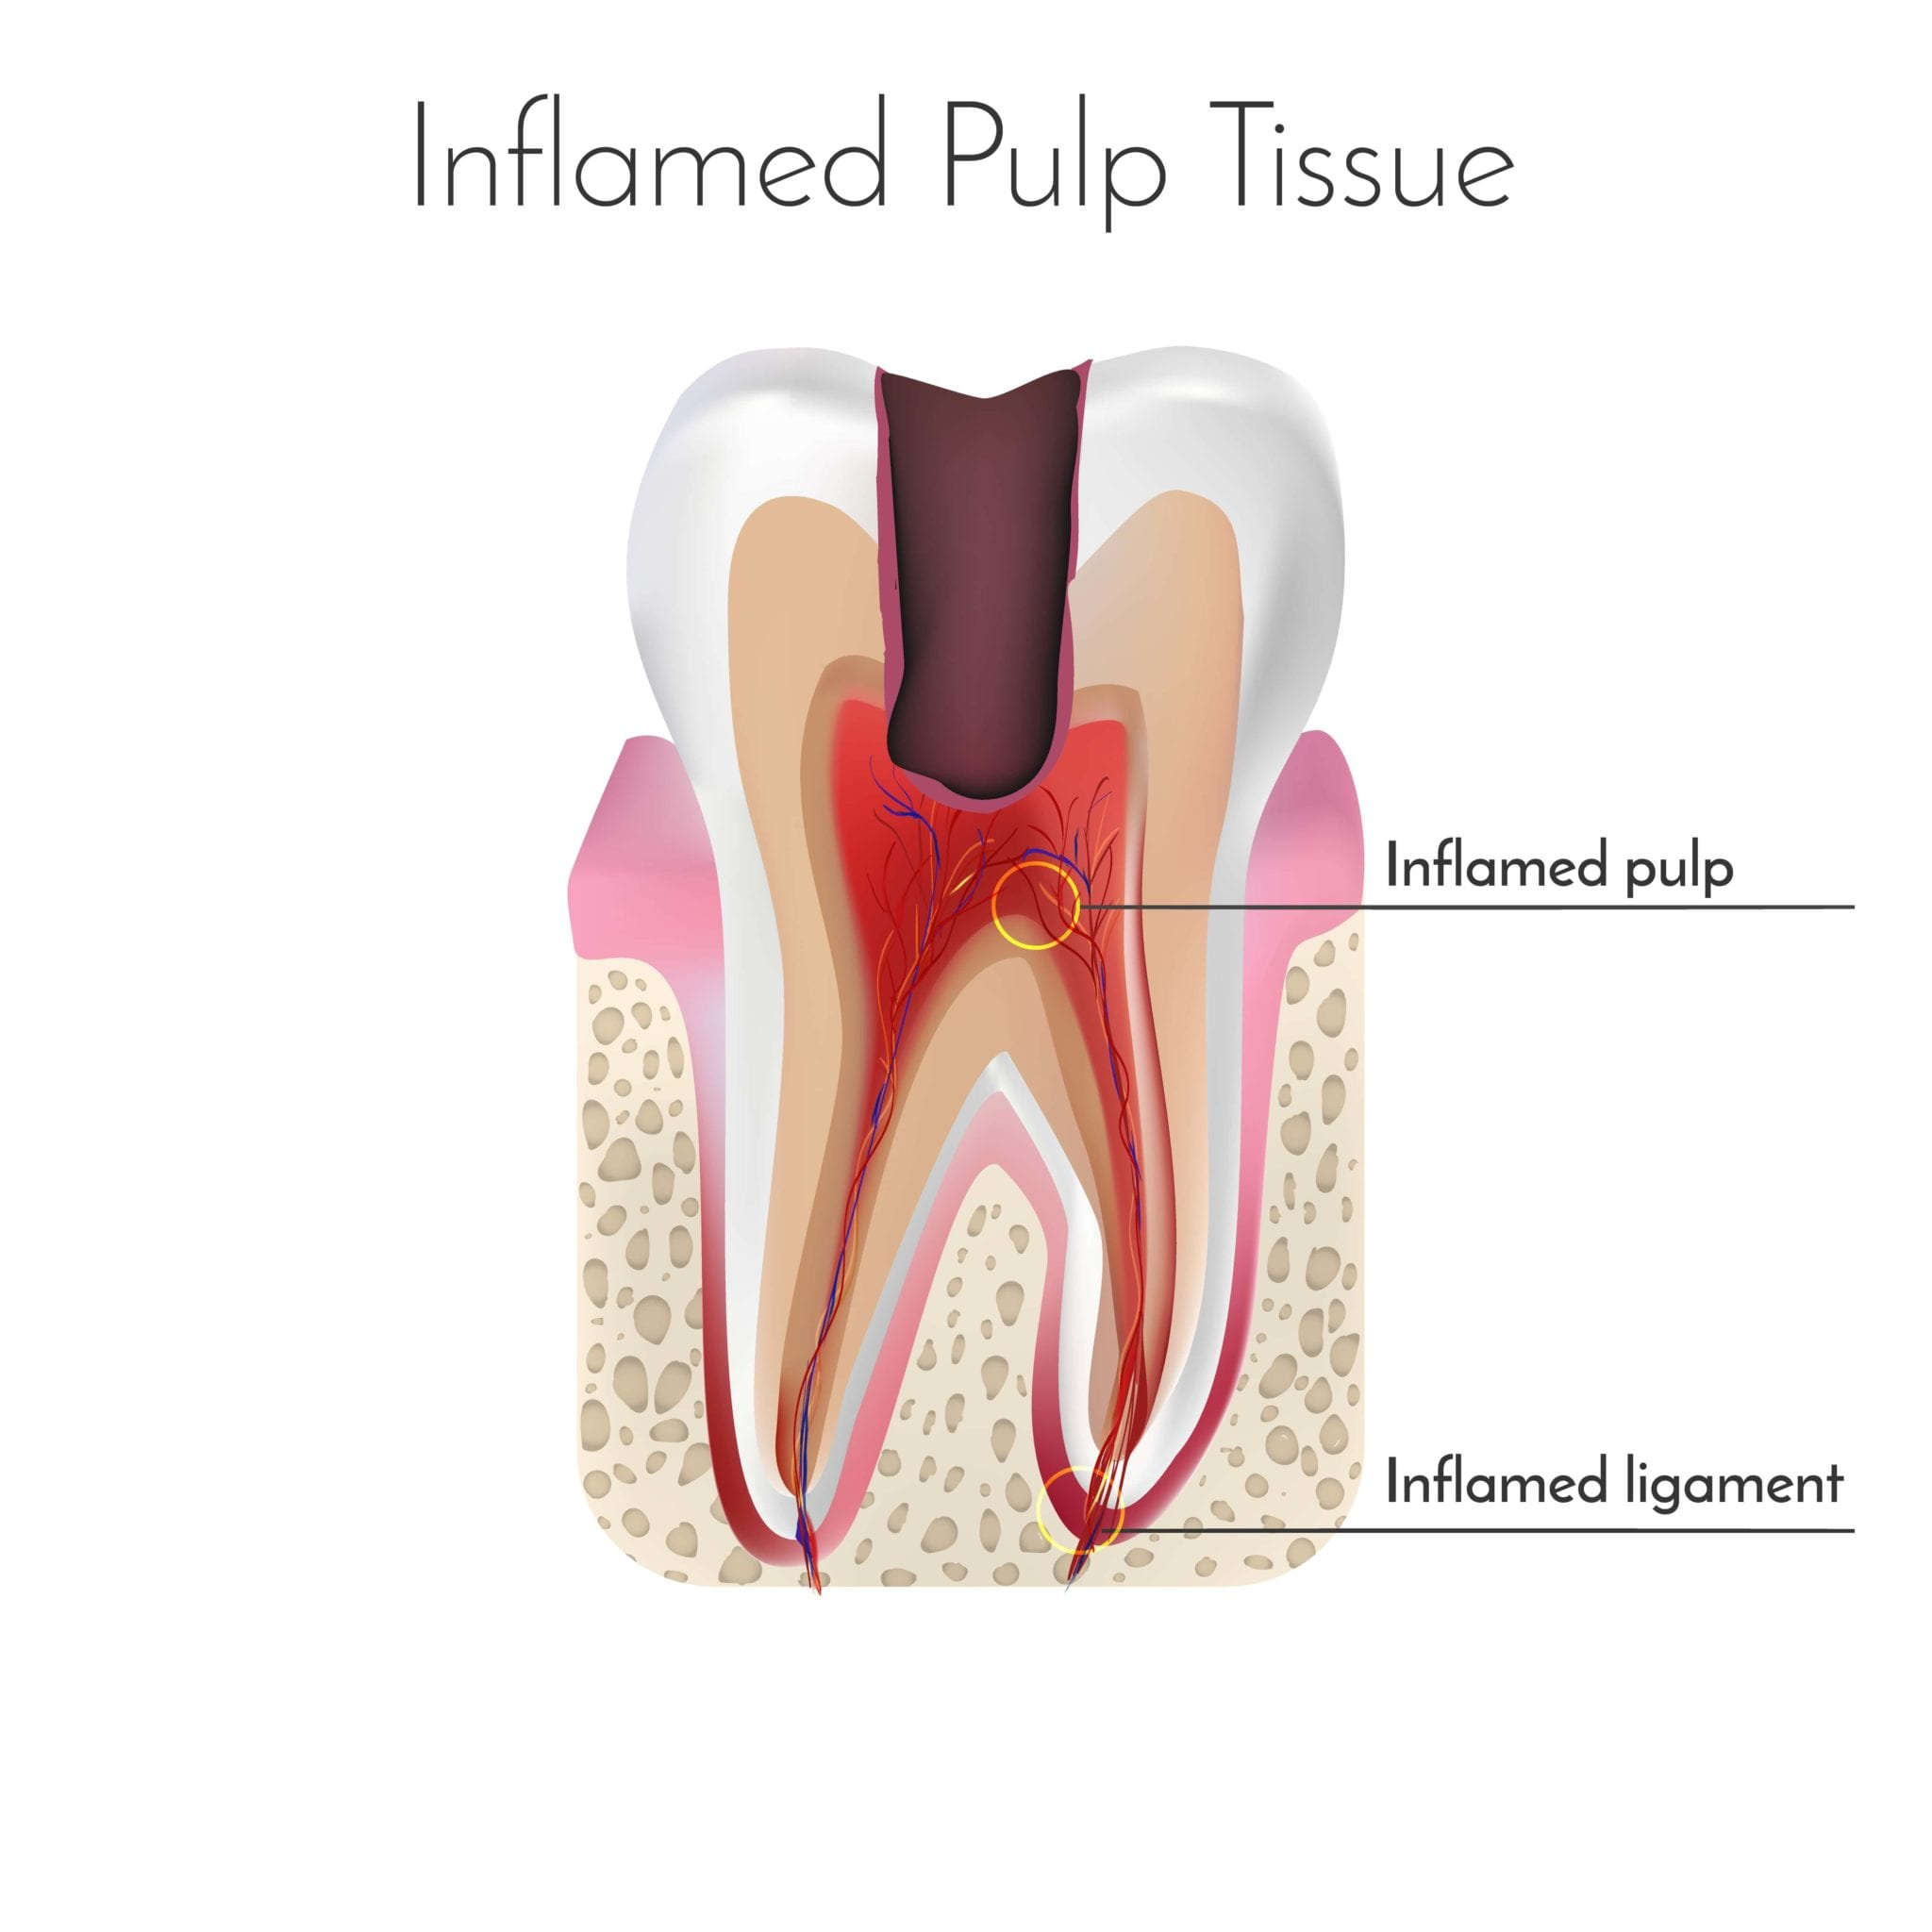 Diagram of a tooth with inflamed pulp